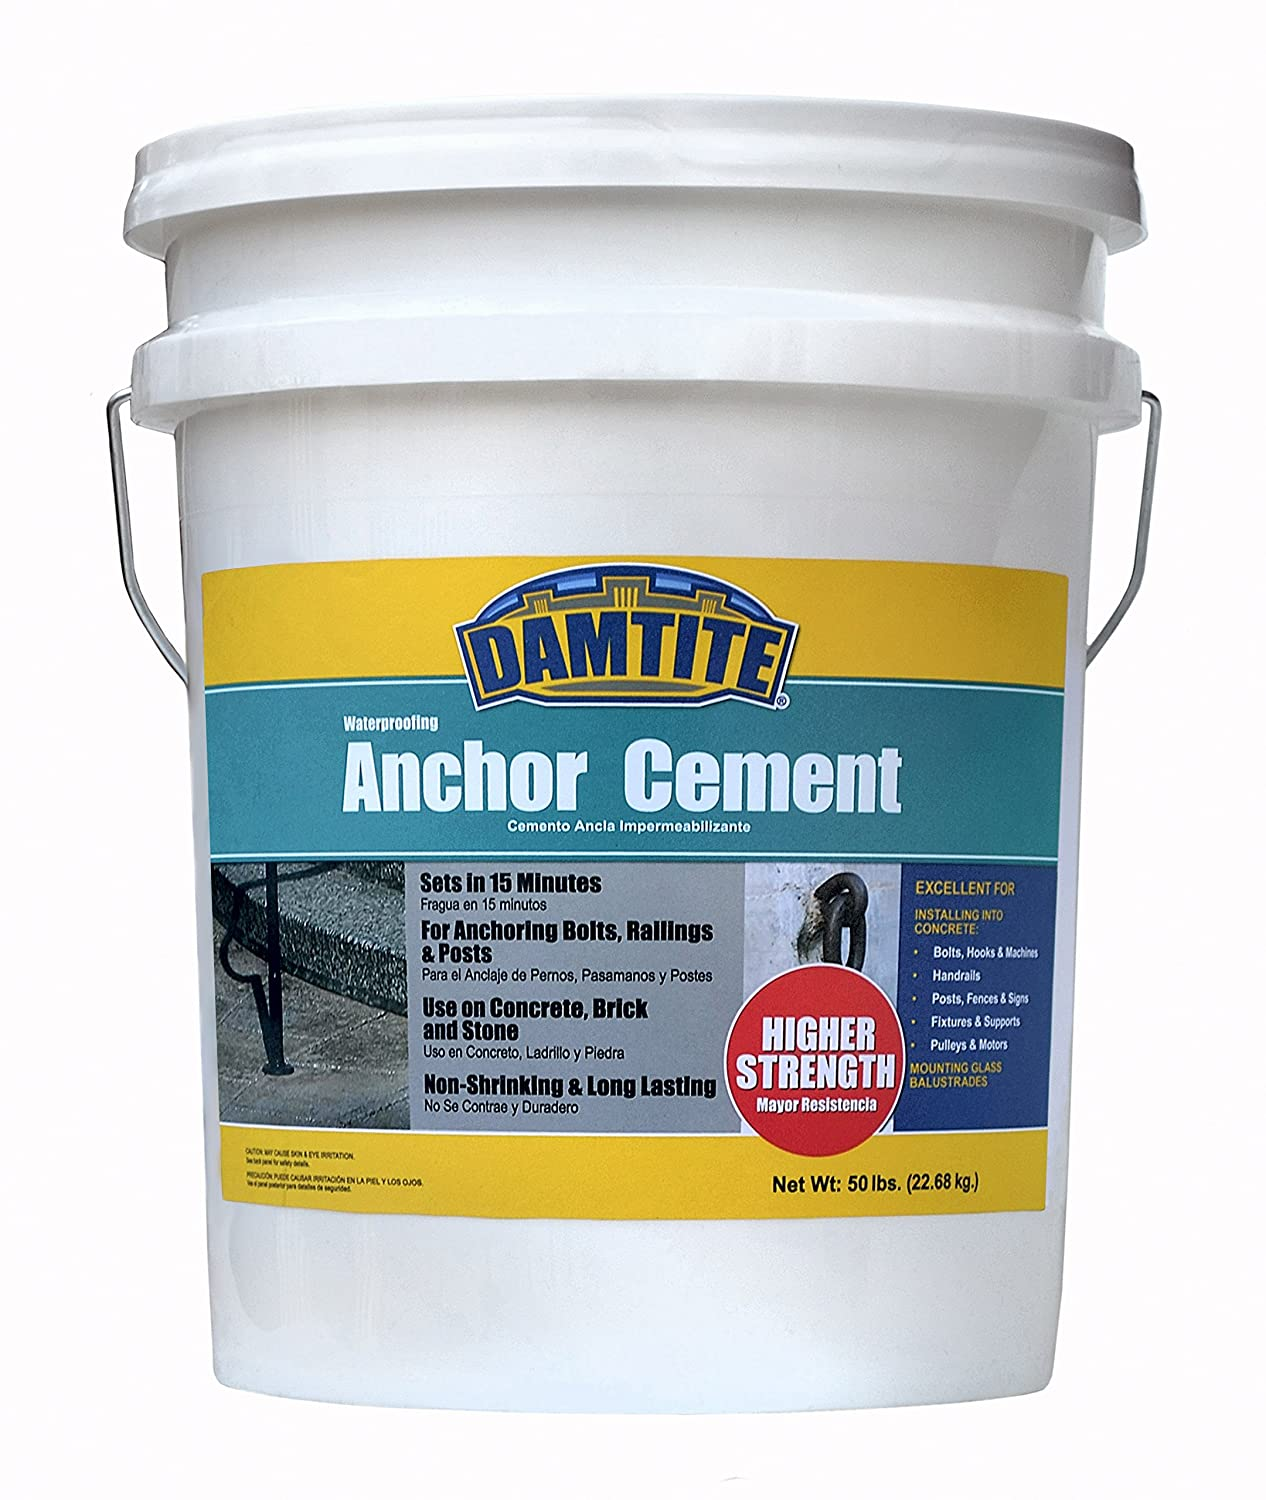 Image of Coatings Damtite 08502 Gray Anchor Cement, 50 lb. Pail